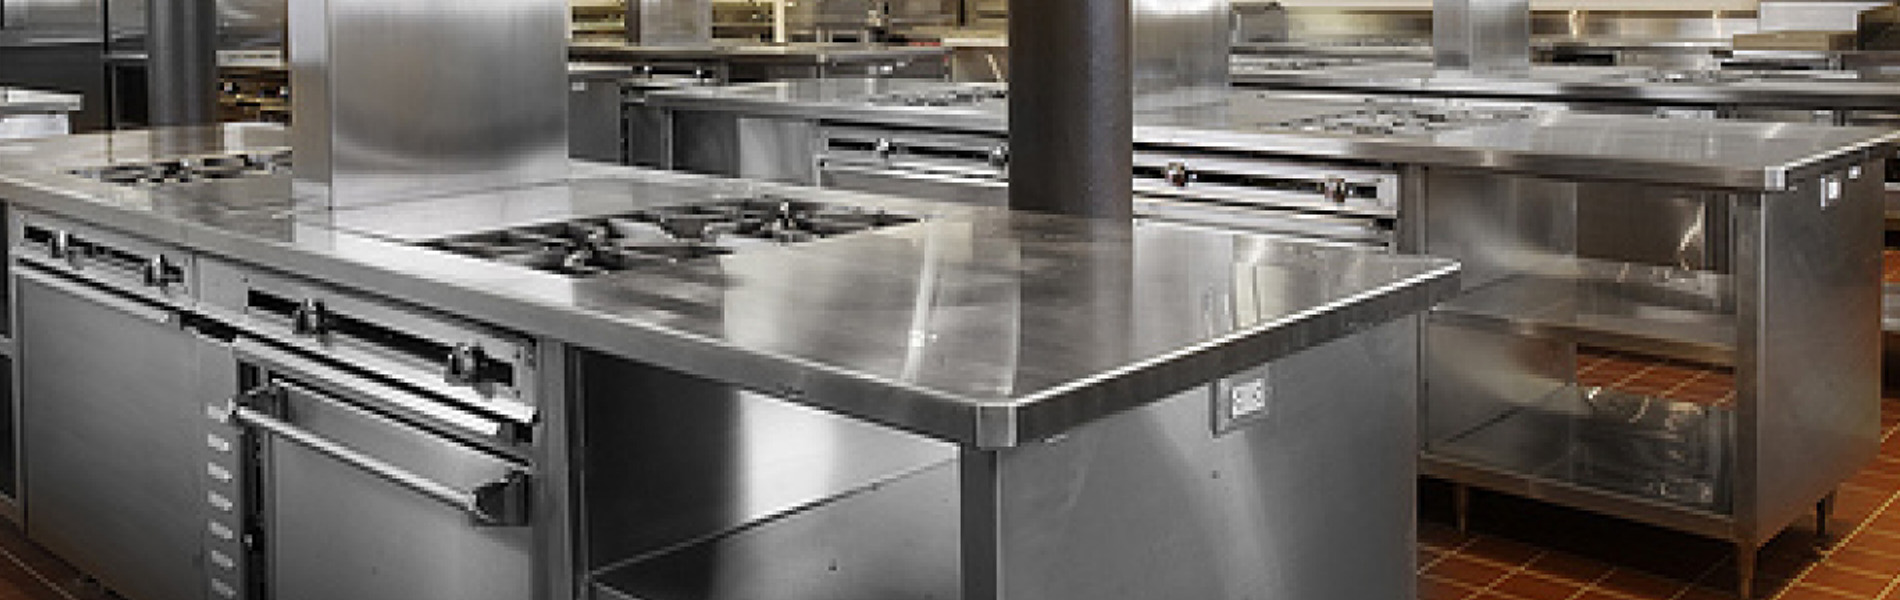 Restaurant Kitchen Oven simmons restaurant oven cleaning | oven cleaning for restaurant